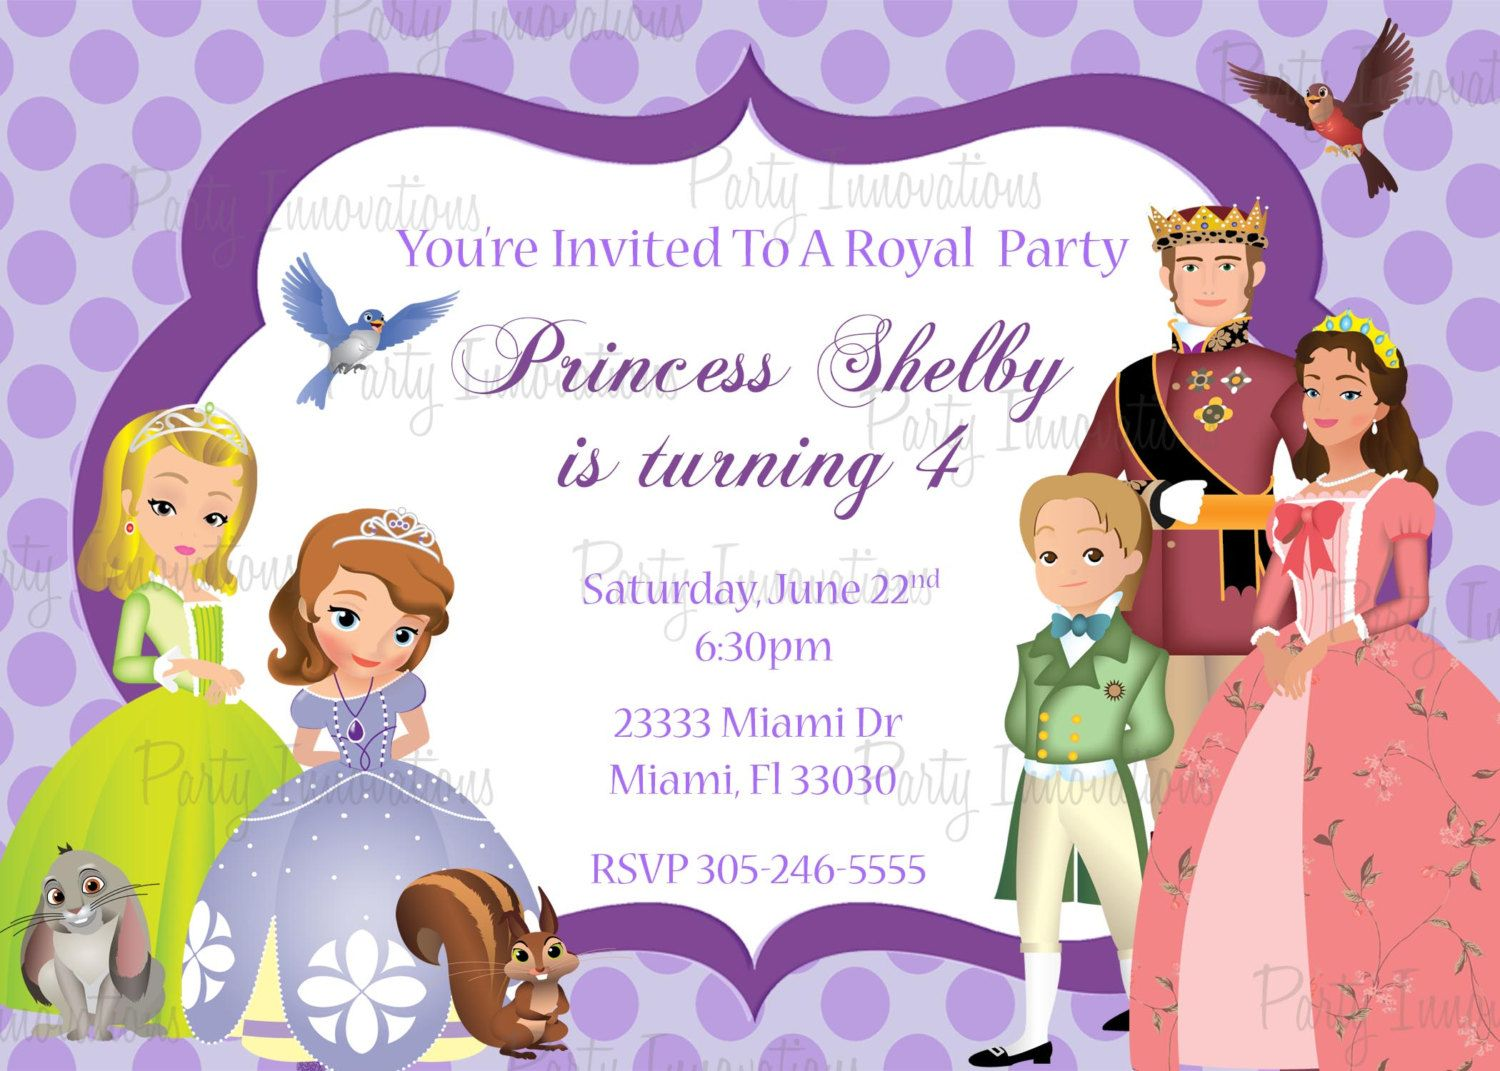 sofia the first birthday wallpaper ; 76c0315268830be46c07d2a84f8bfca8